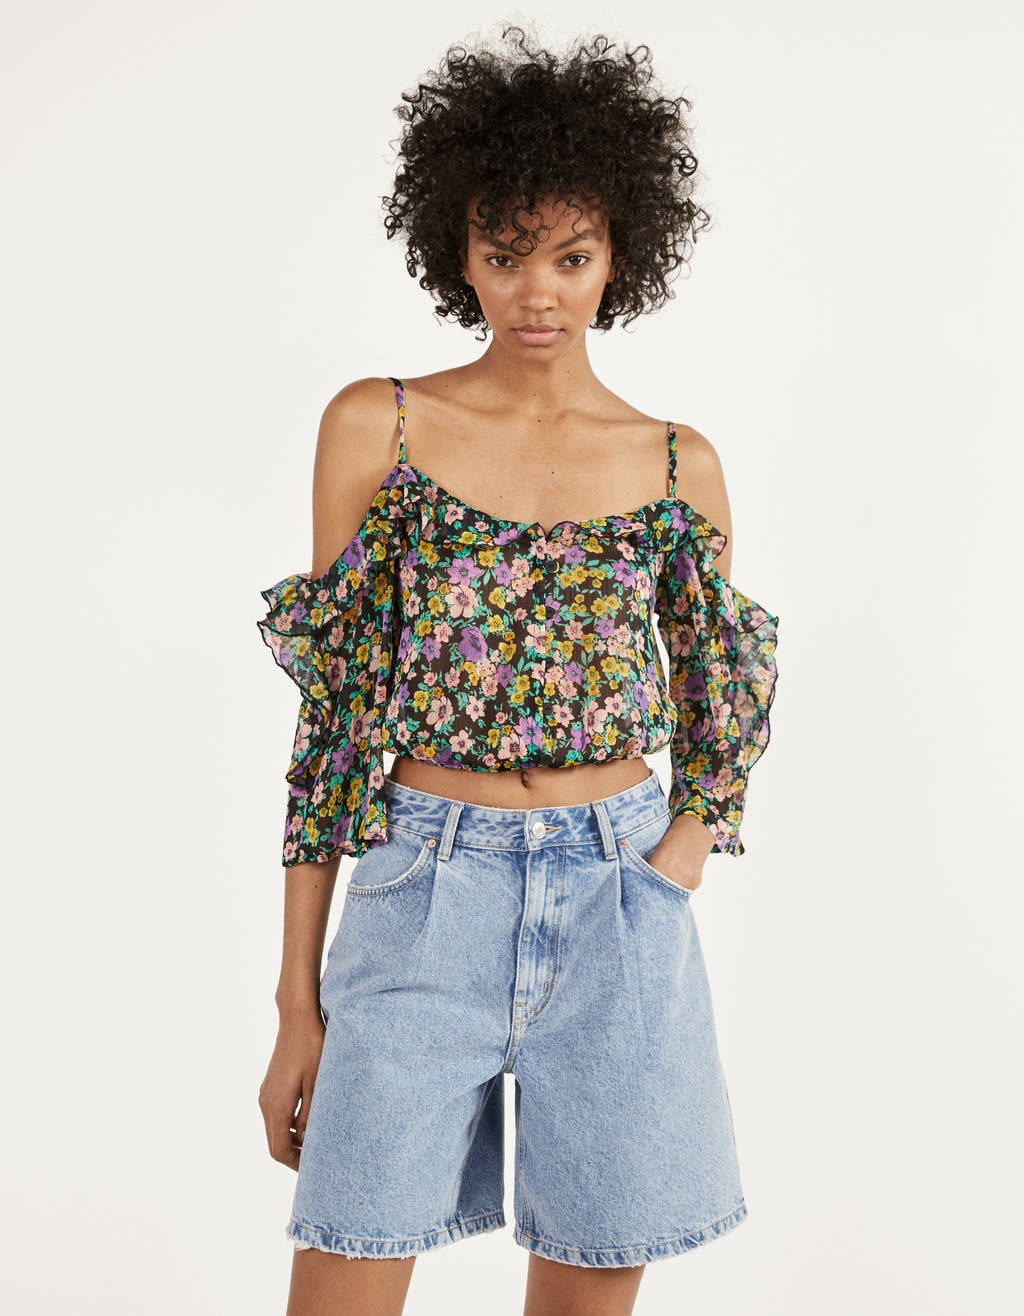 Blusa cut out con estampado de flores